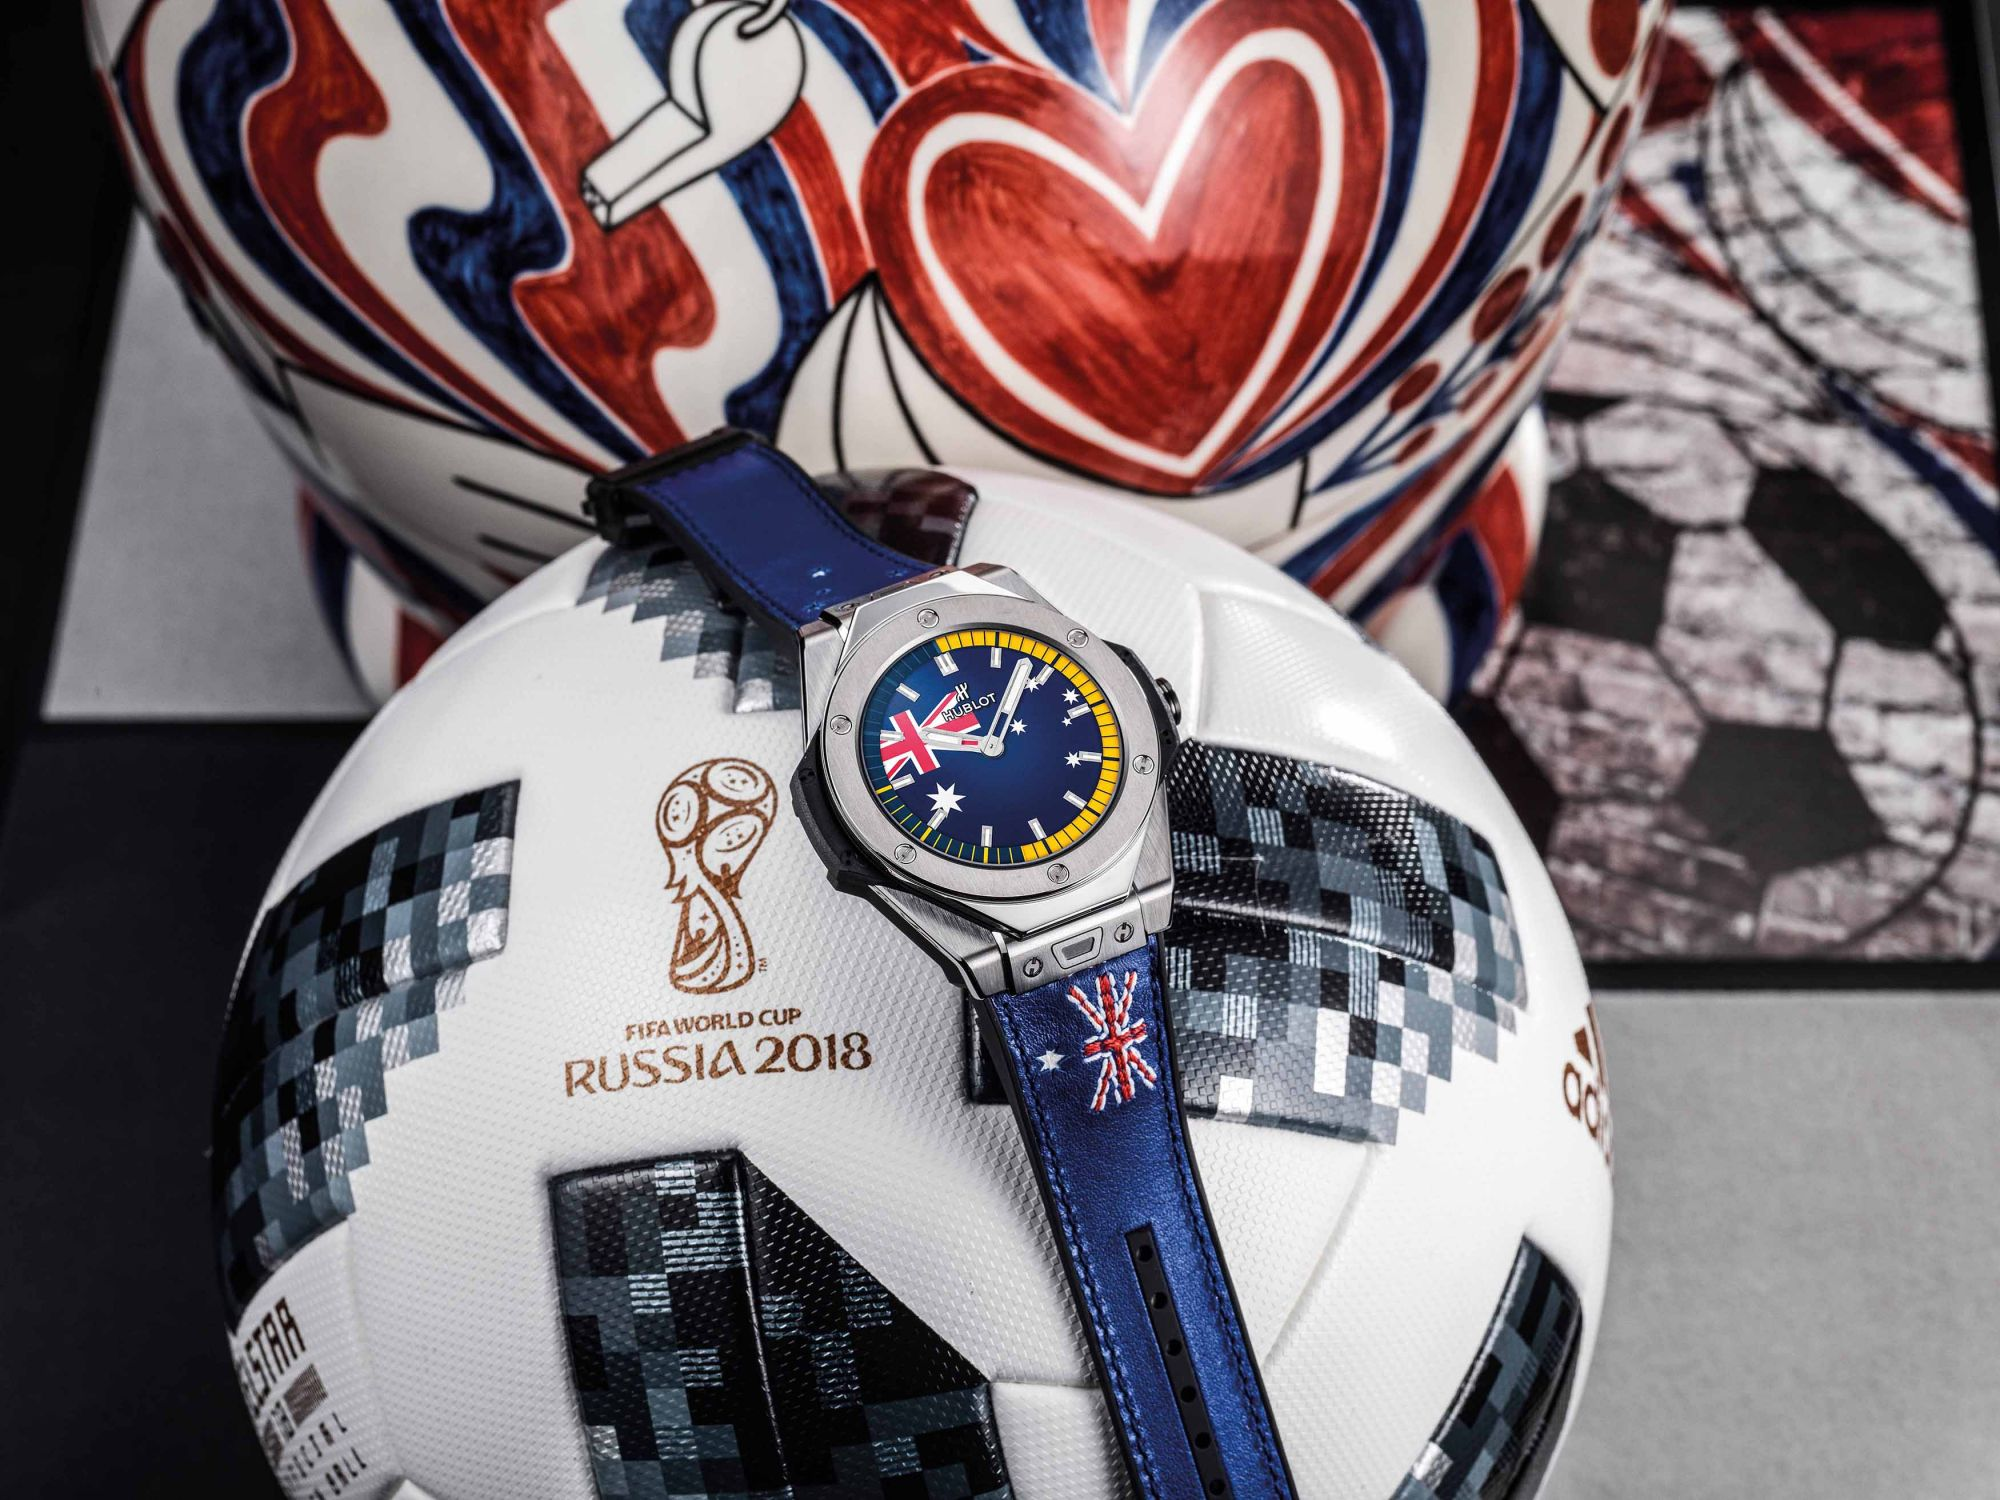 Football fans can show their support for their favourite teams by changing the dial, and even the bracelet, of the Hublot Big Bang Referee watch